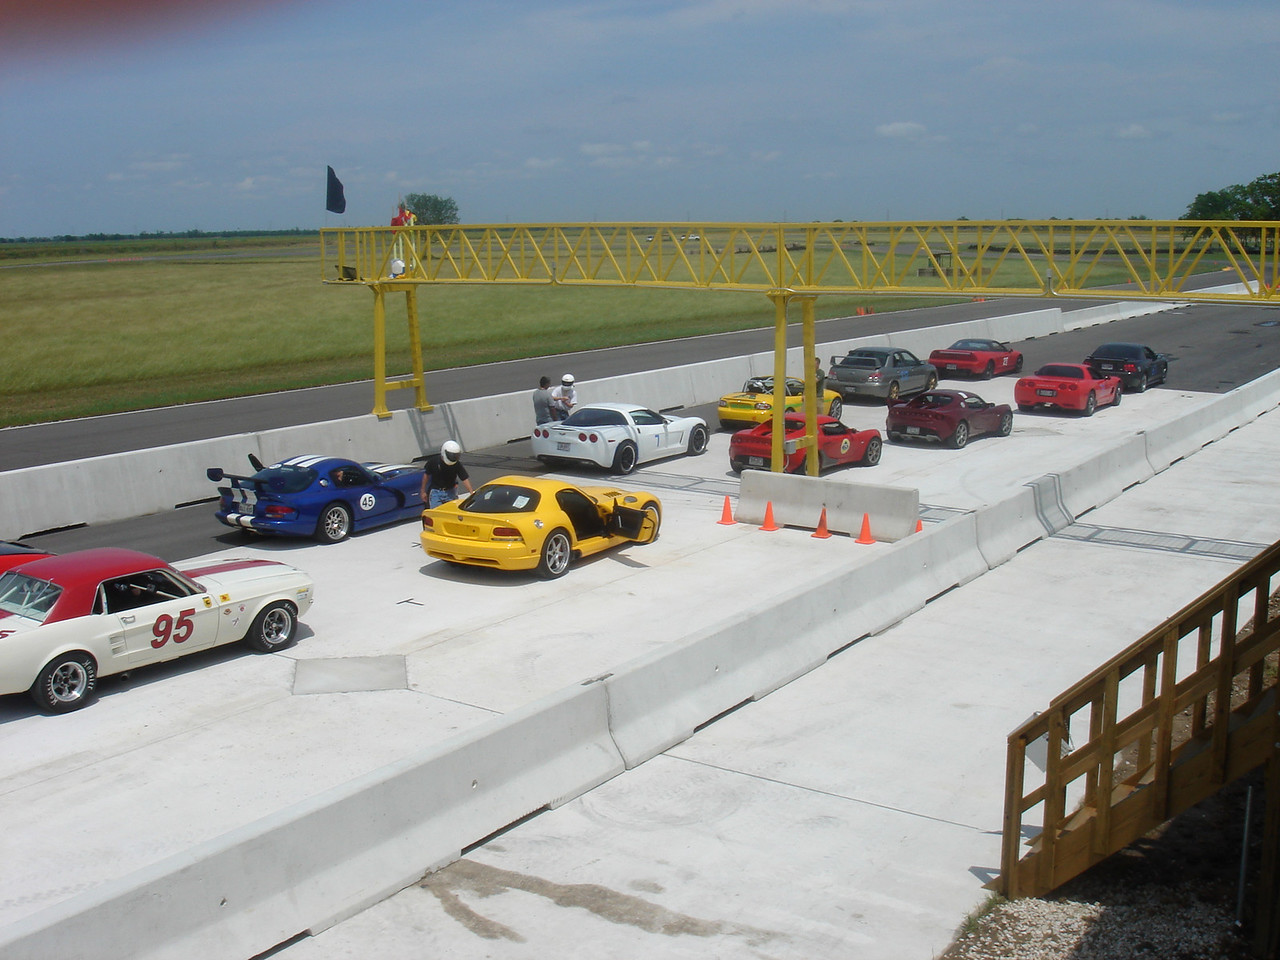 Cars lining up on grid